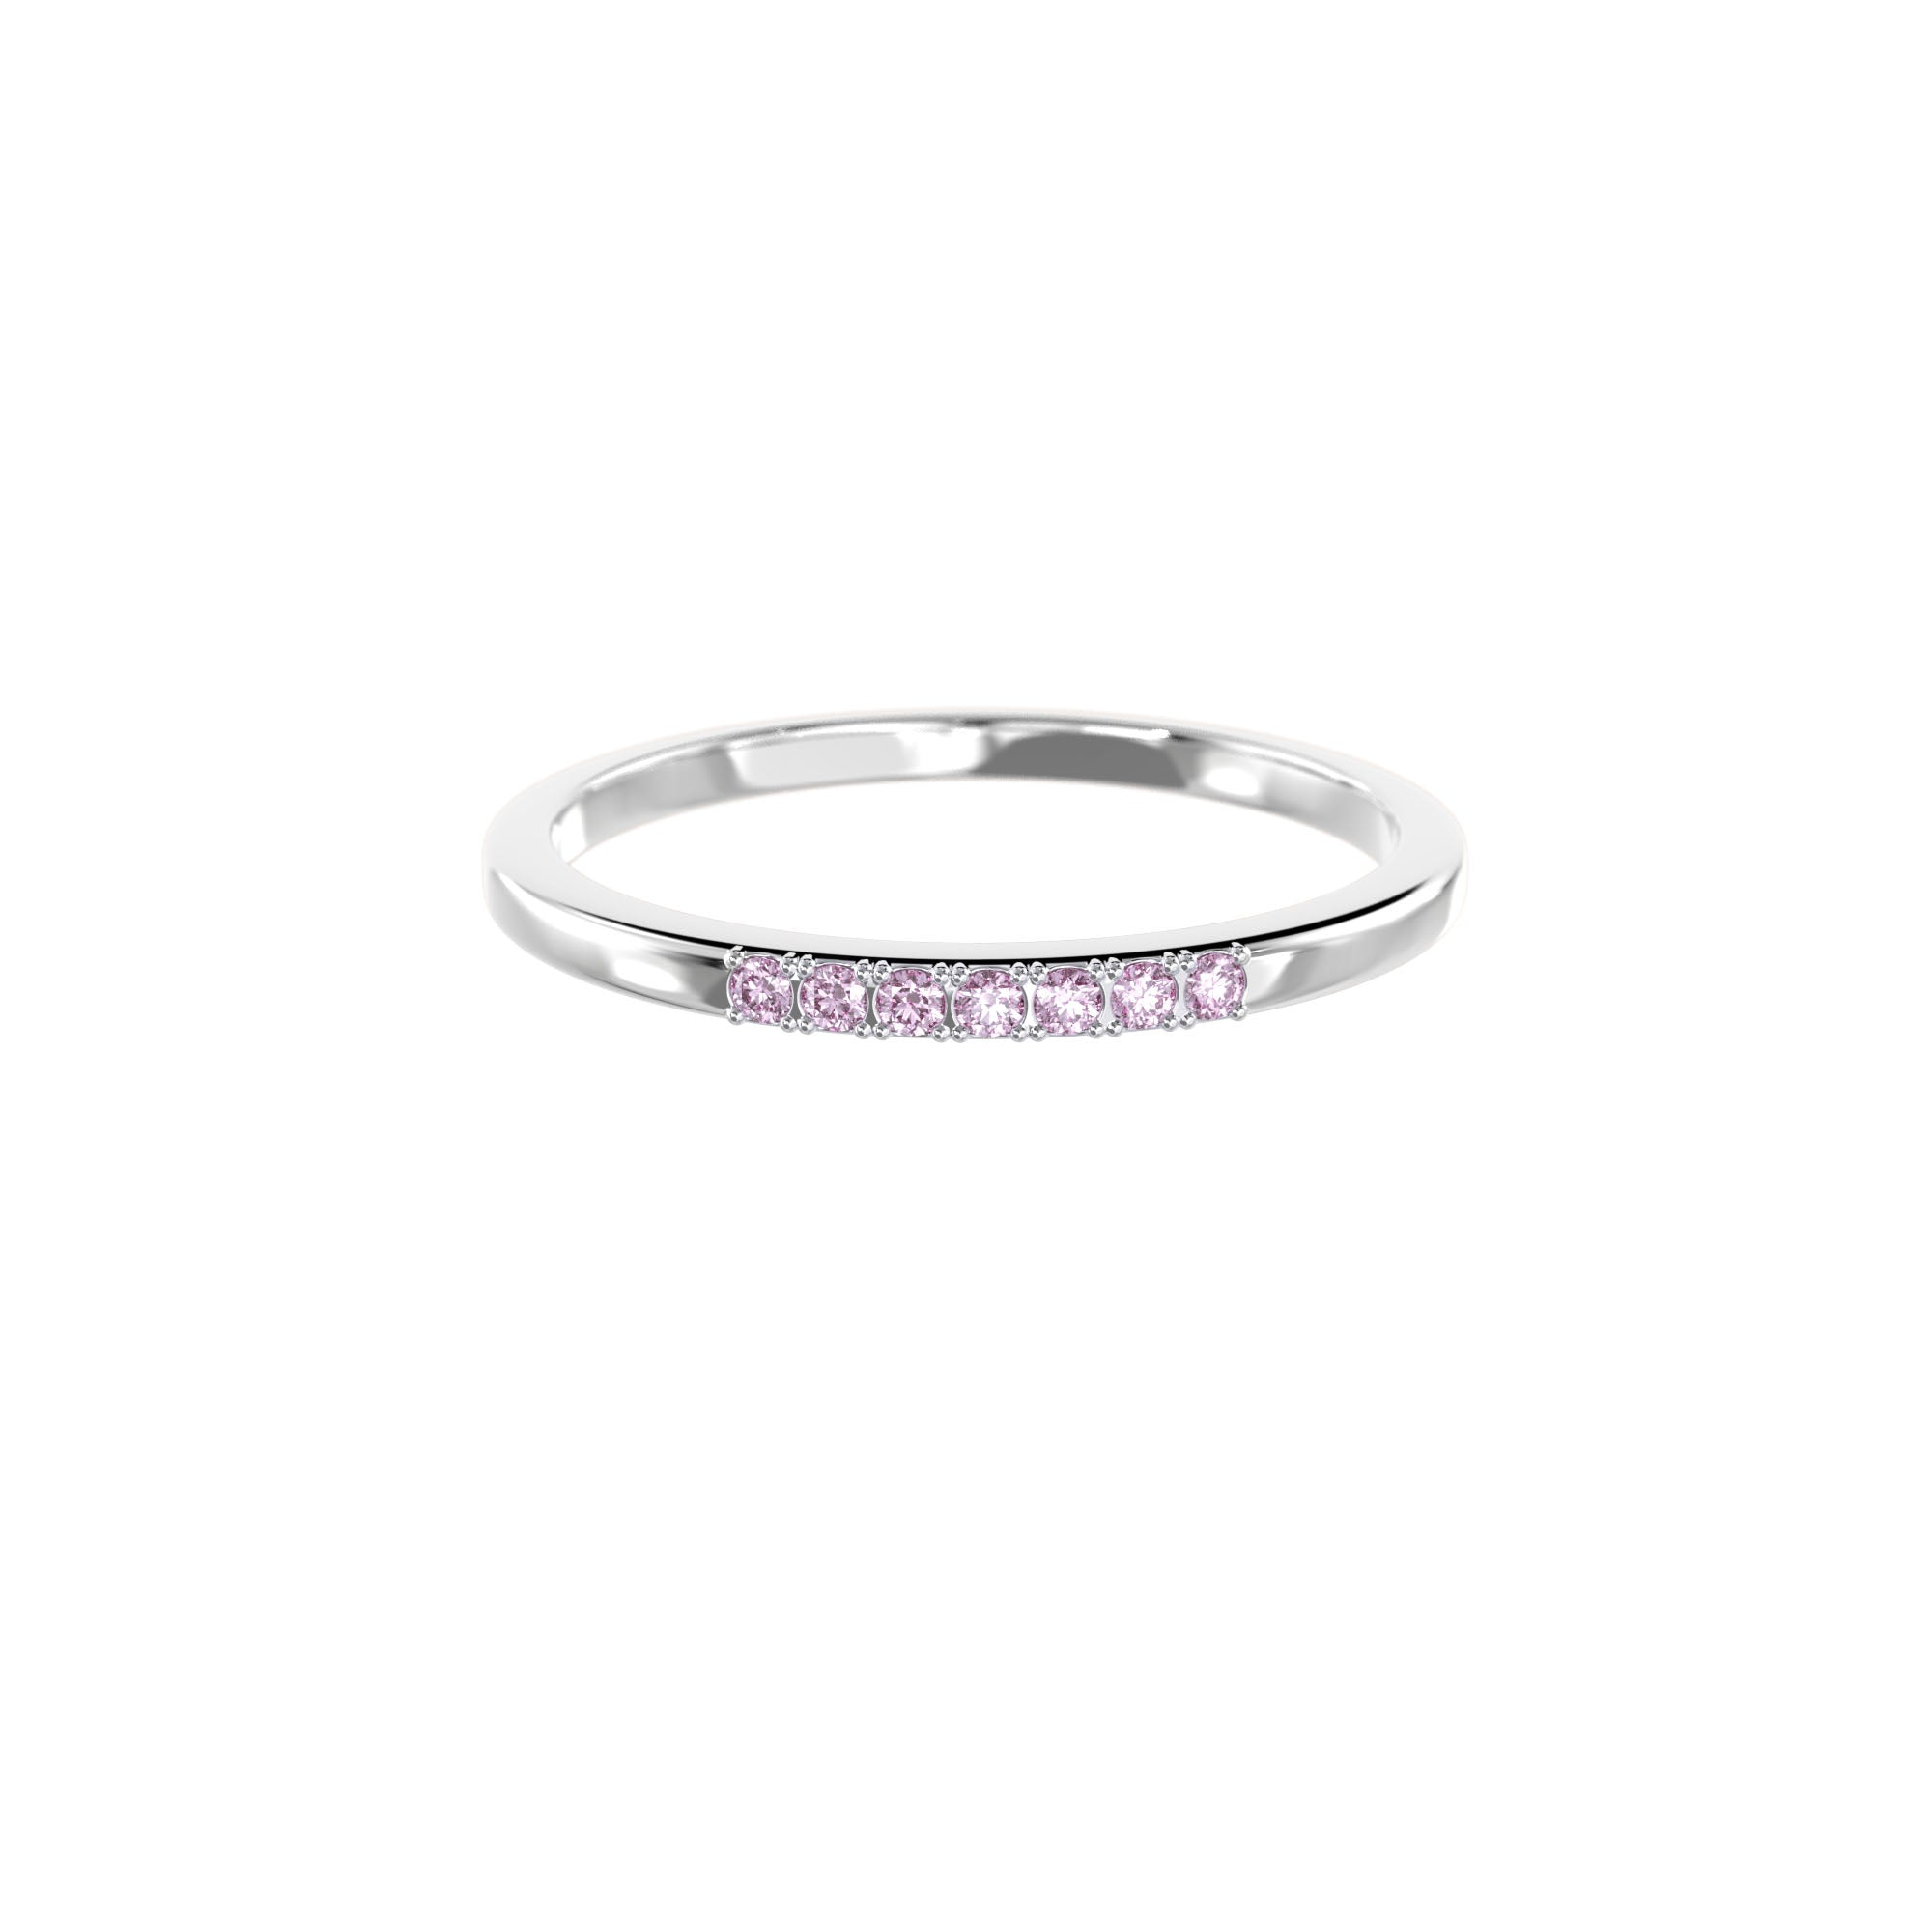 925 Silver Classic Series Ring - Esther (Pink Sapphire) - Rhodium Plated